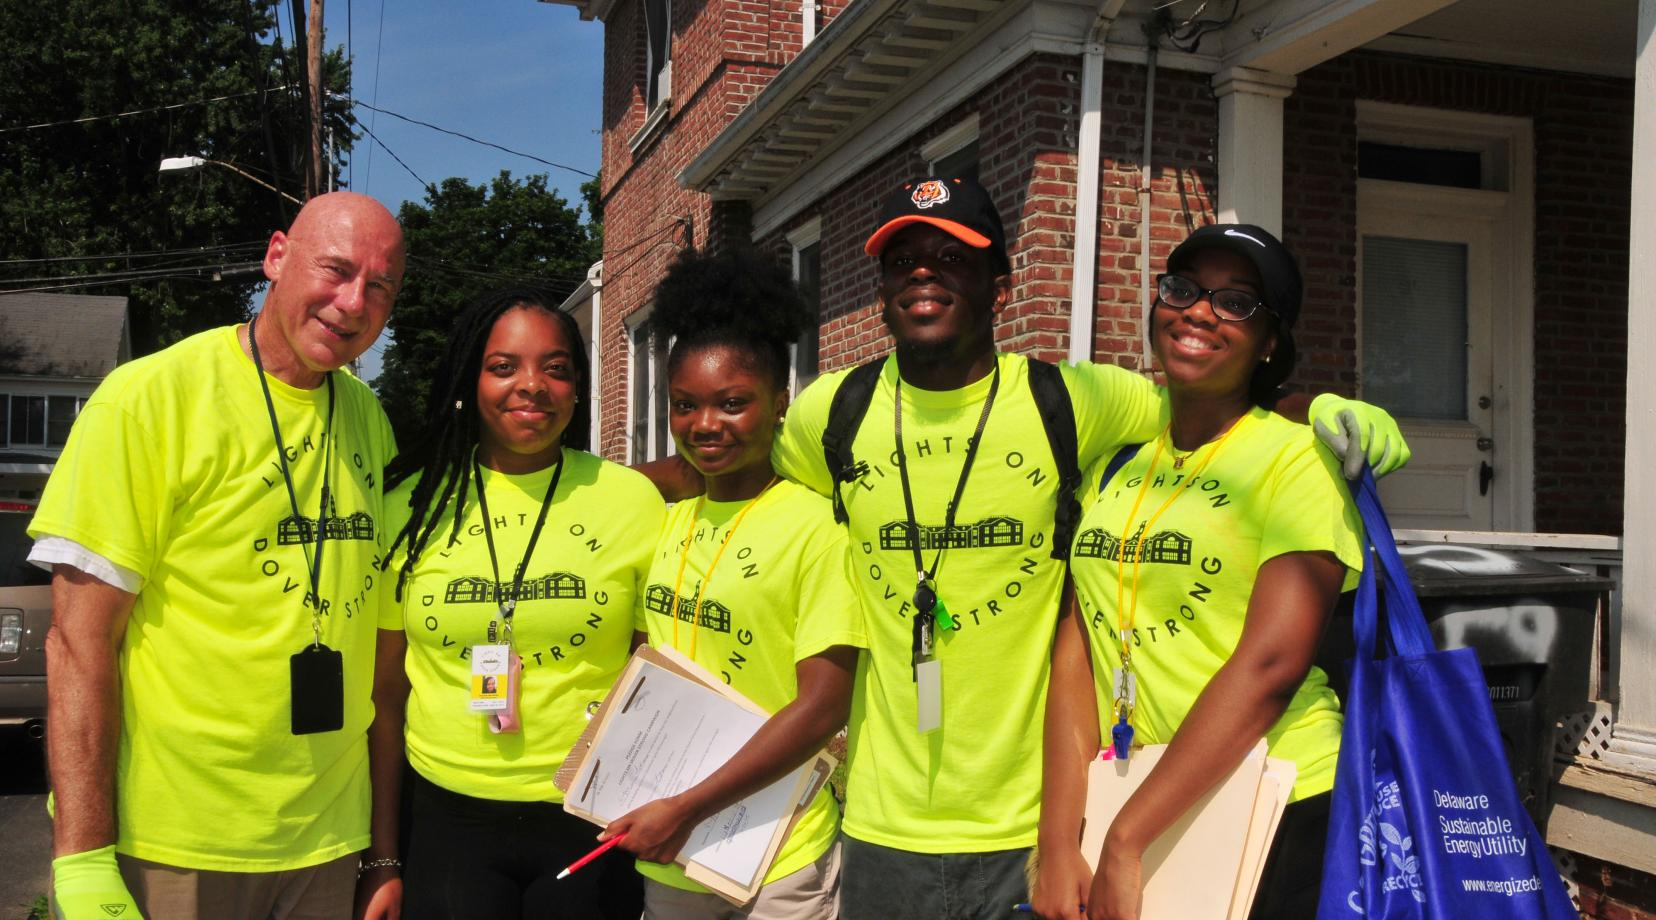 <p>(L-r) Lights on Dover Strong Program team -- Charles Kistler, executive director of the HELP Initiative, with DSU students Danielle McAllister, Dashayna Brown, Eric Wright and Rich Kotter. The team is making a crime-challenged area of Dover safer.</p>